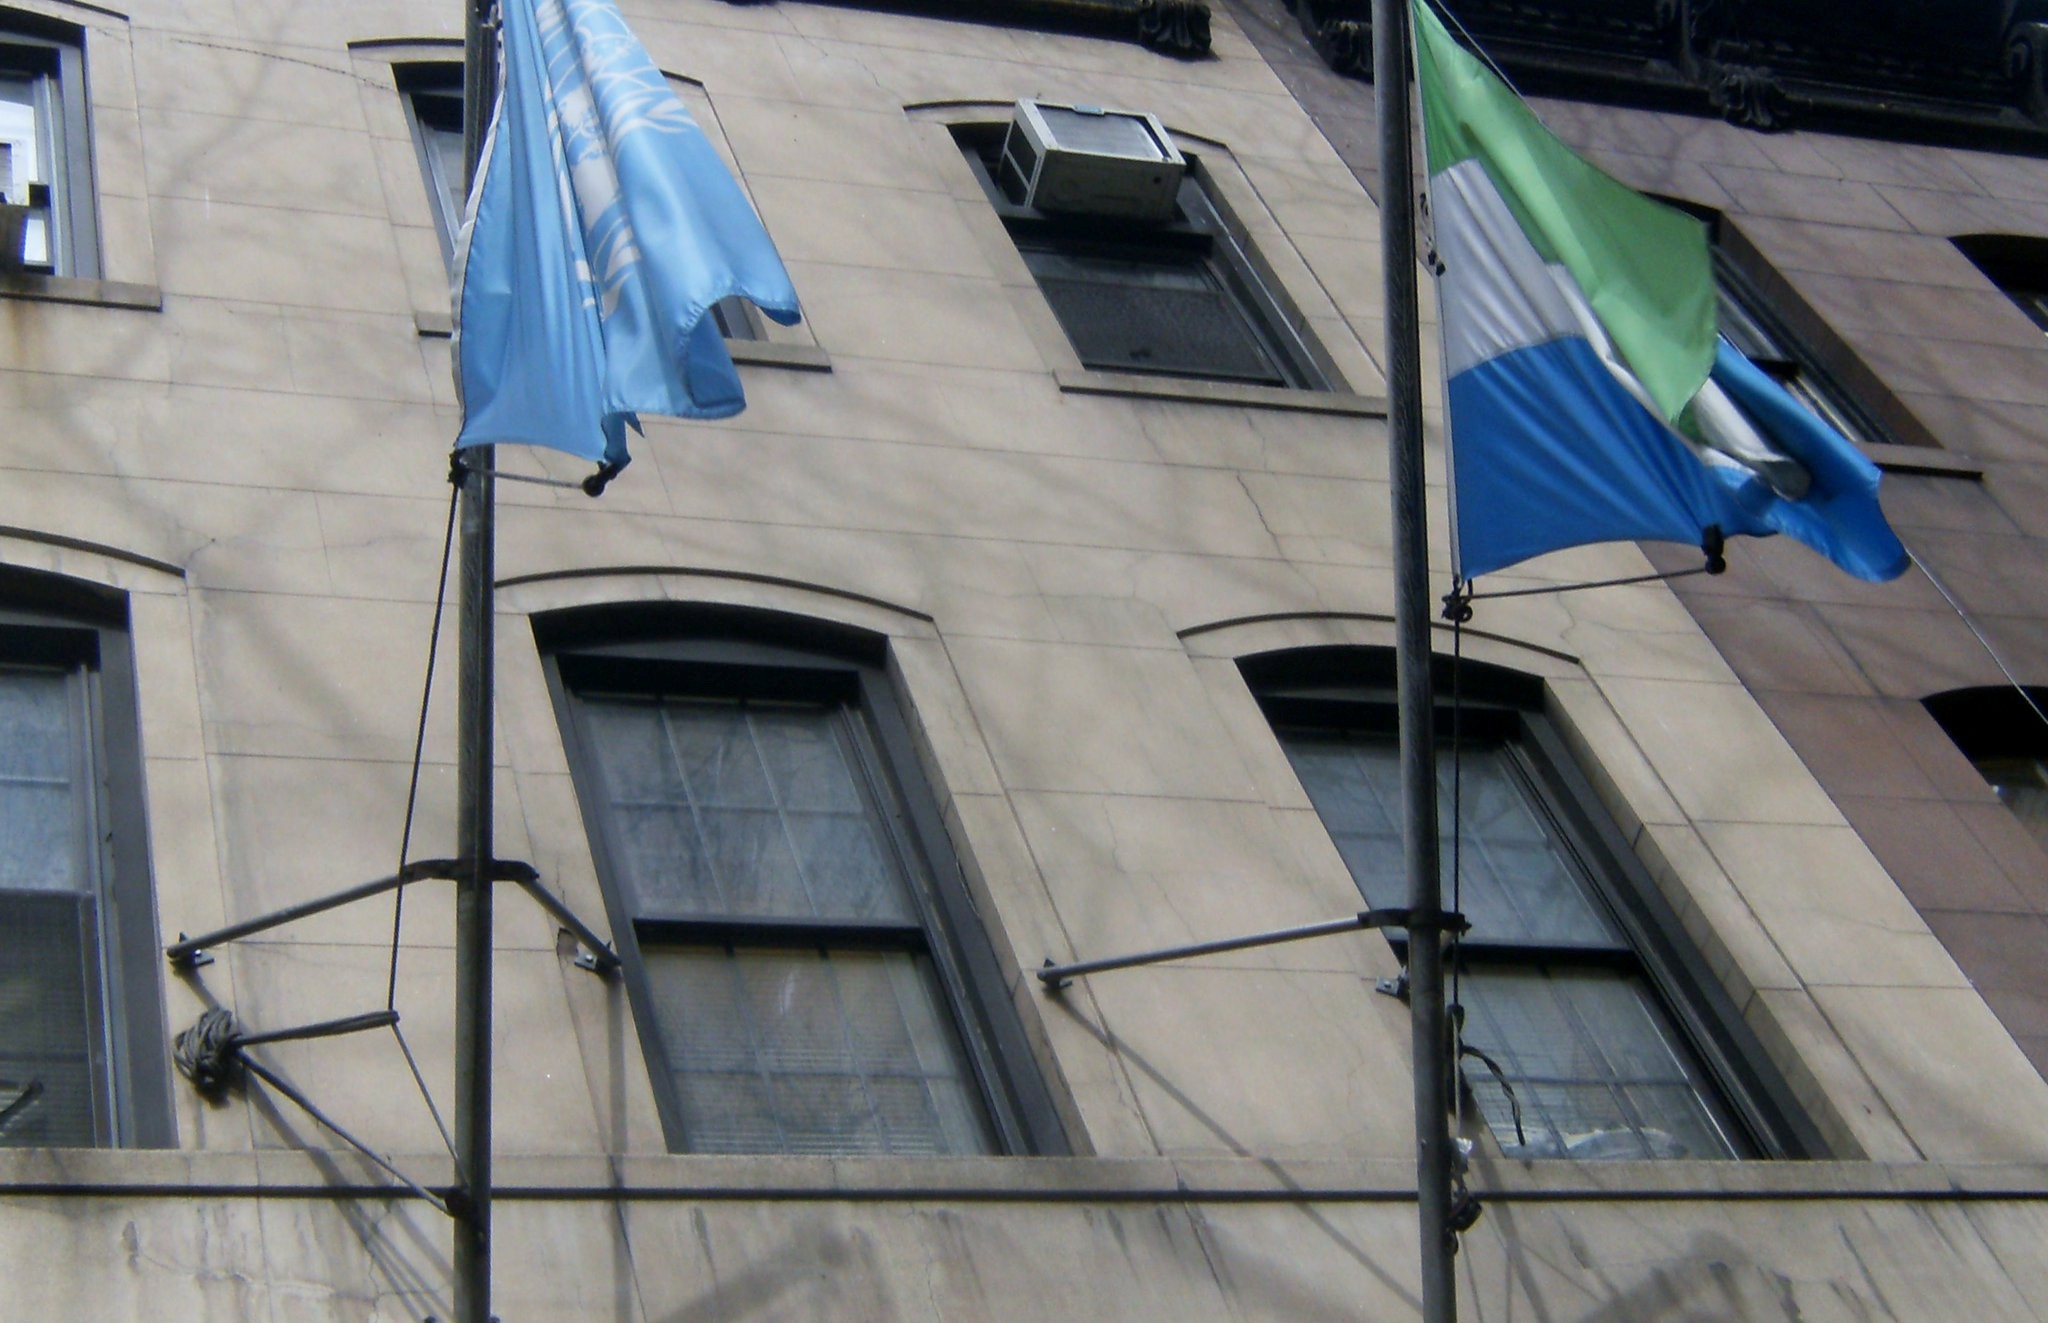 Salone Mission to the UN in New York City